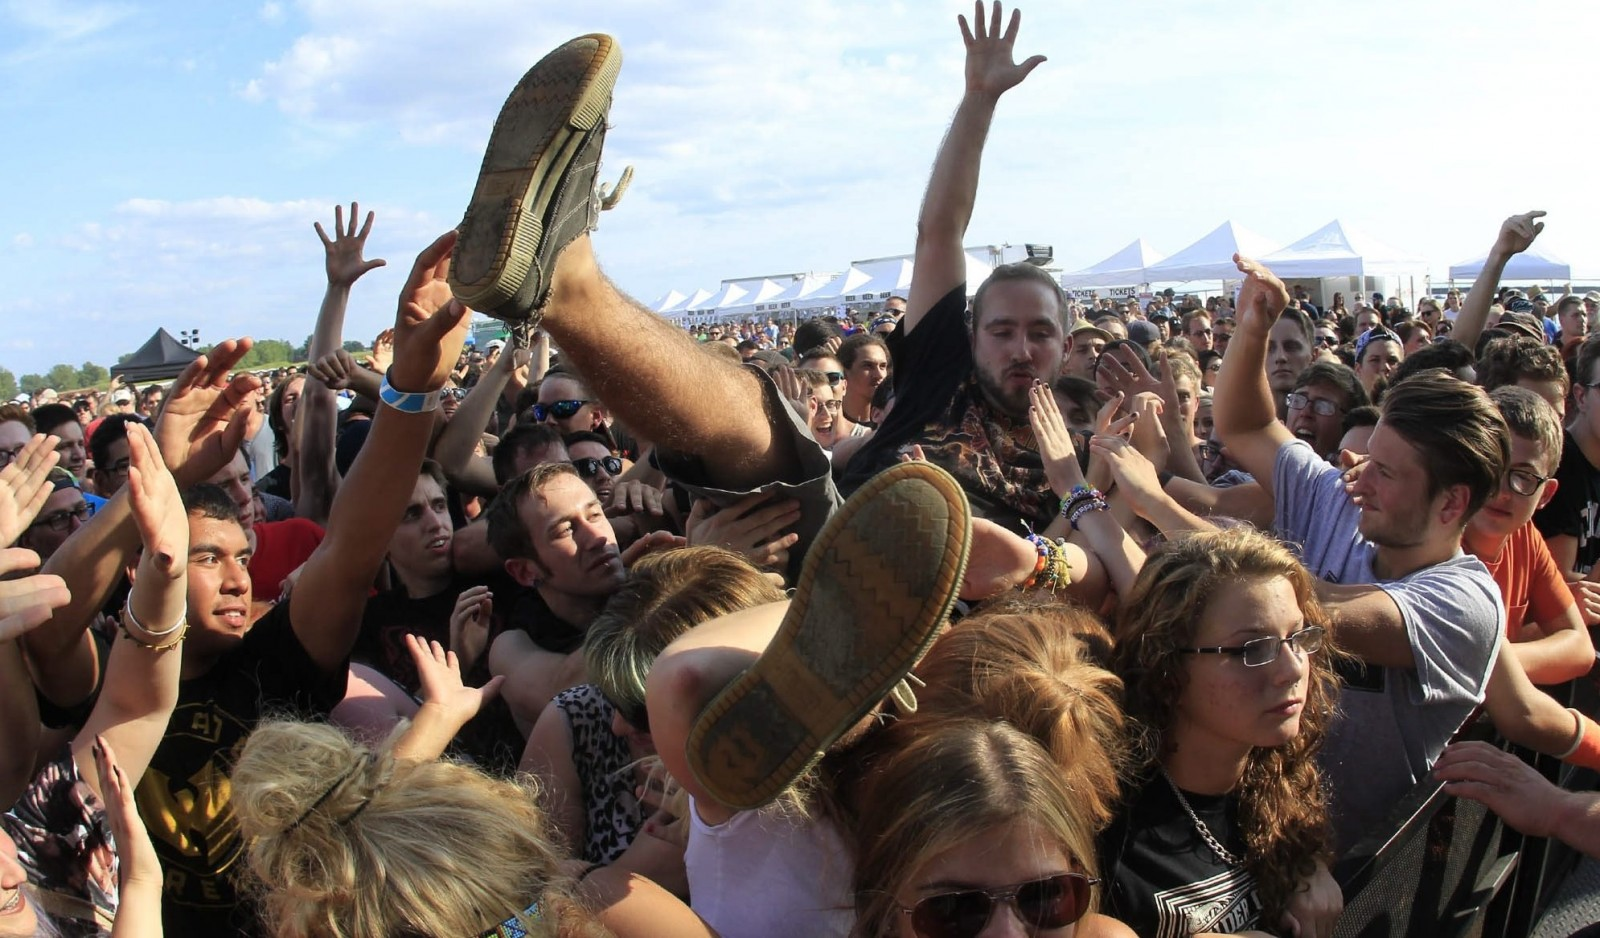 A fan surfs the crowd during last year's Edgefest at the Outer Harbor.